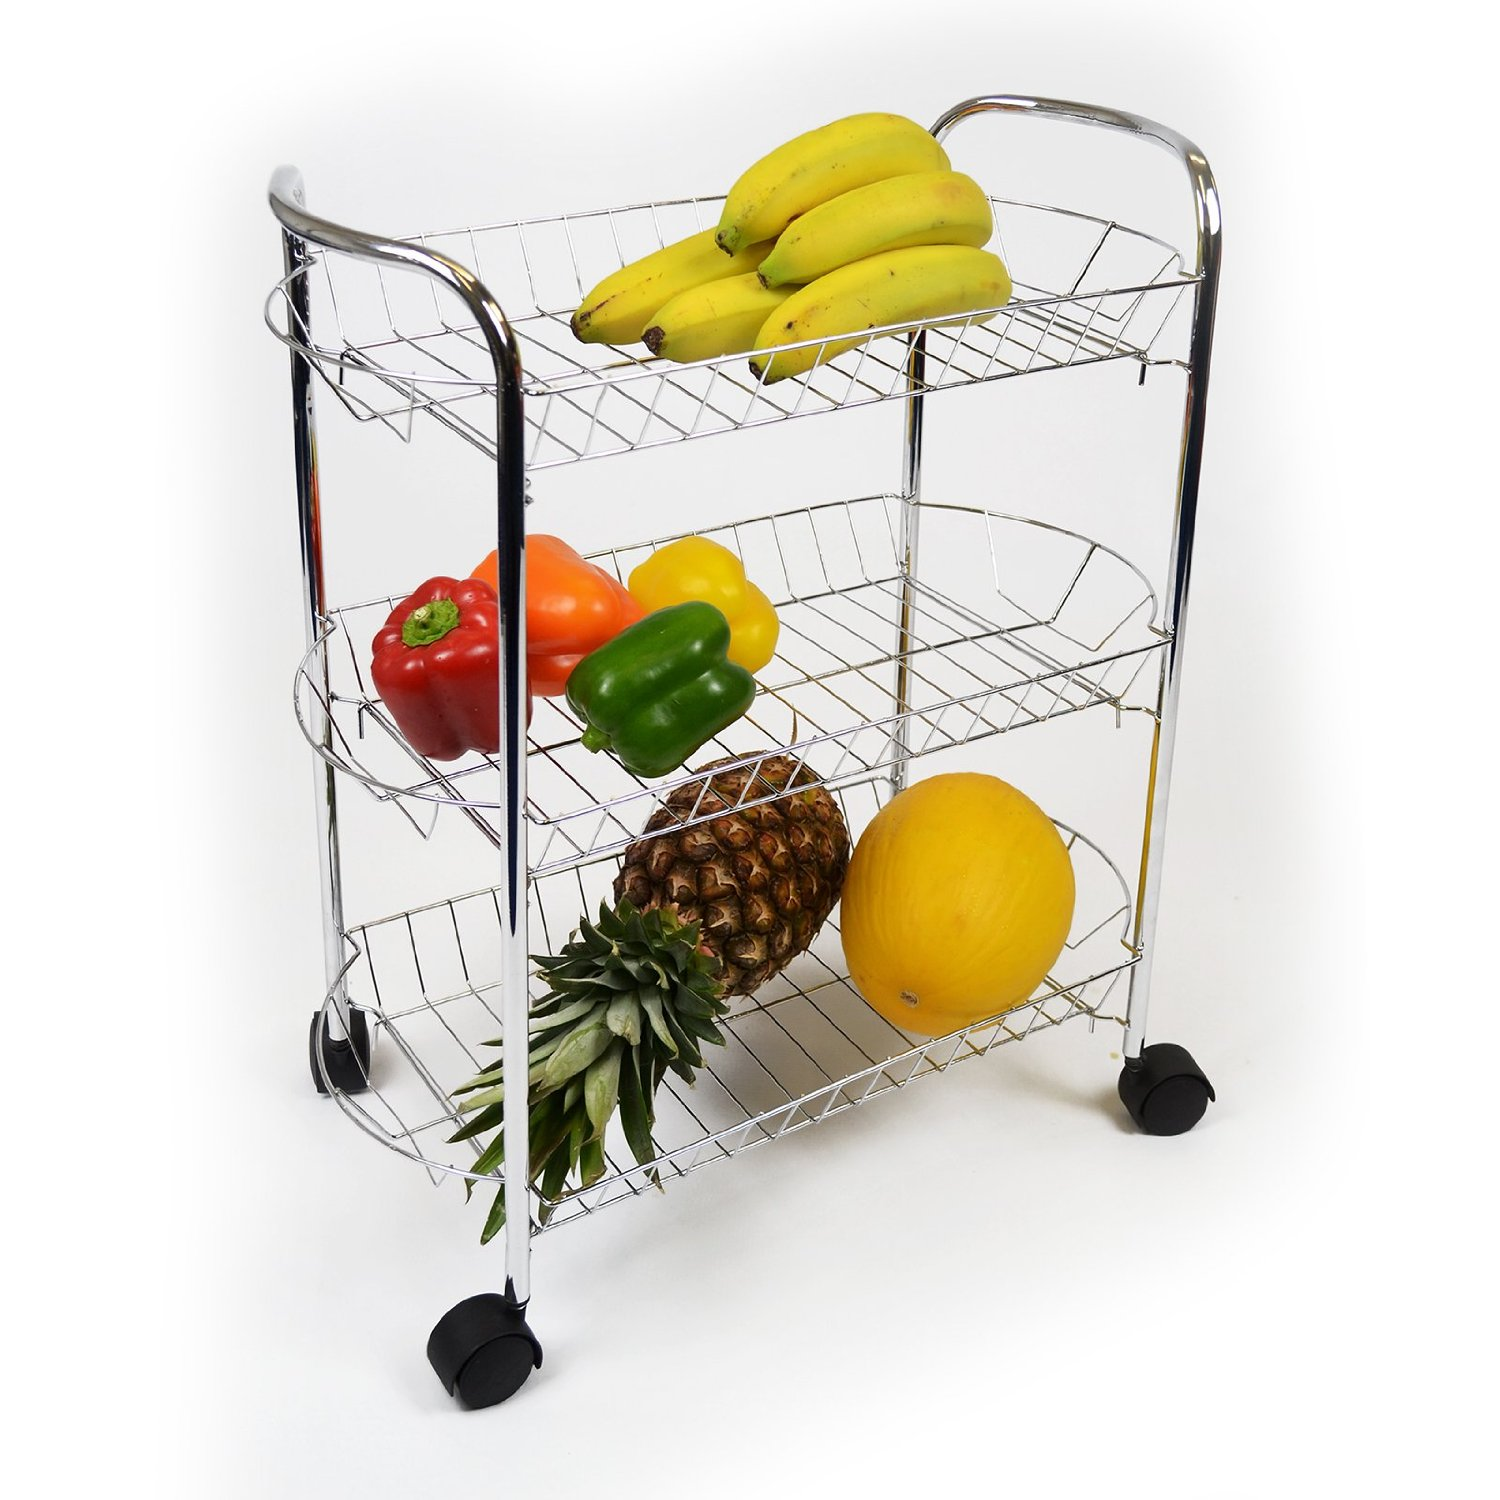 home depot appliances philippines with Kitchen Craft Vegetable Trolley on Photo White Kitchen Design Ideas Gallery as well Sierra Vista in addition Interior Design Ideas For A Small Kitchen further Home Depot Profits Climb in addition Kitchen With Oak Cabi s Tips And Trick For A New Look.